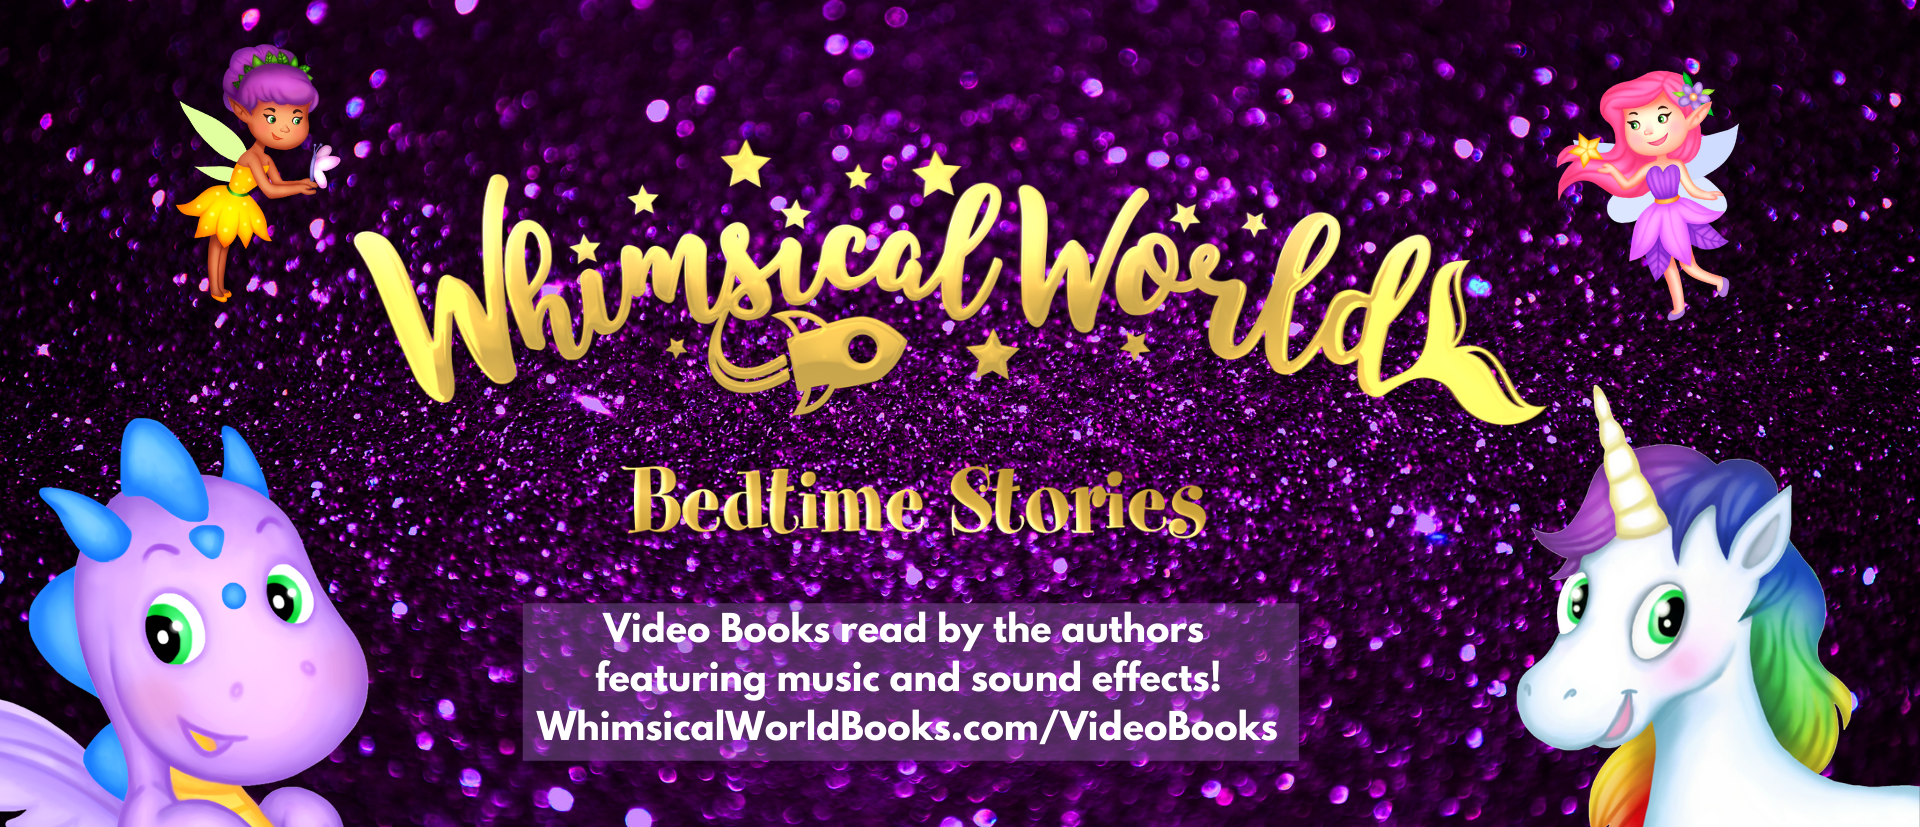 Introducing Whimsical World Bedtime Stories Children's Video Books